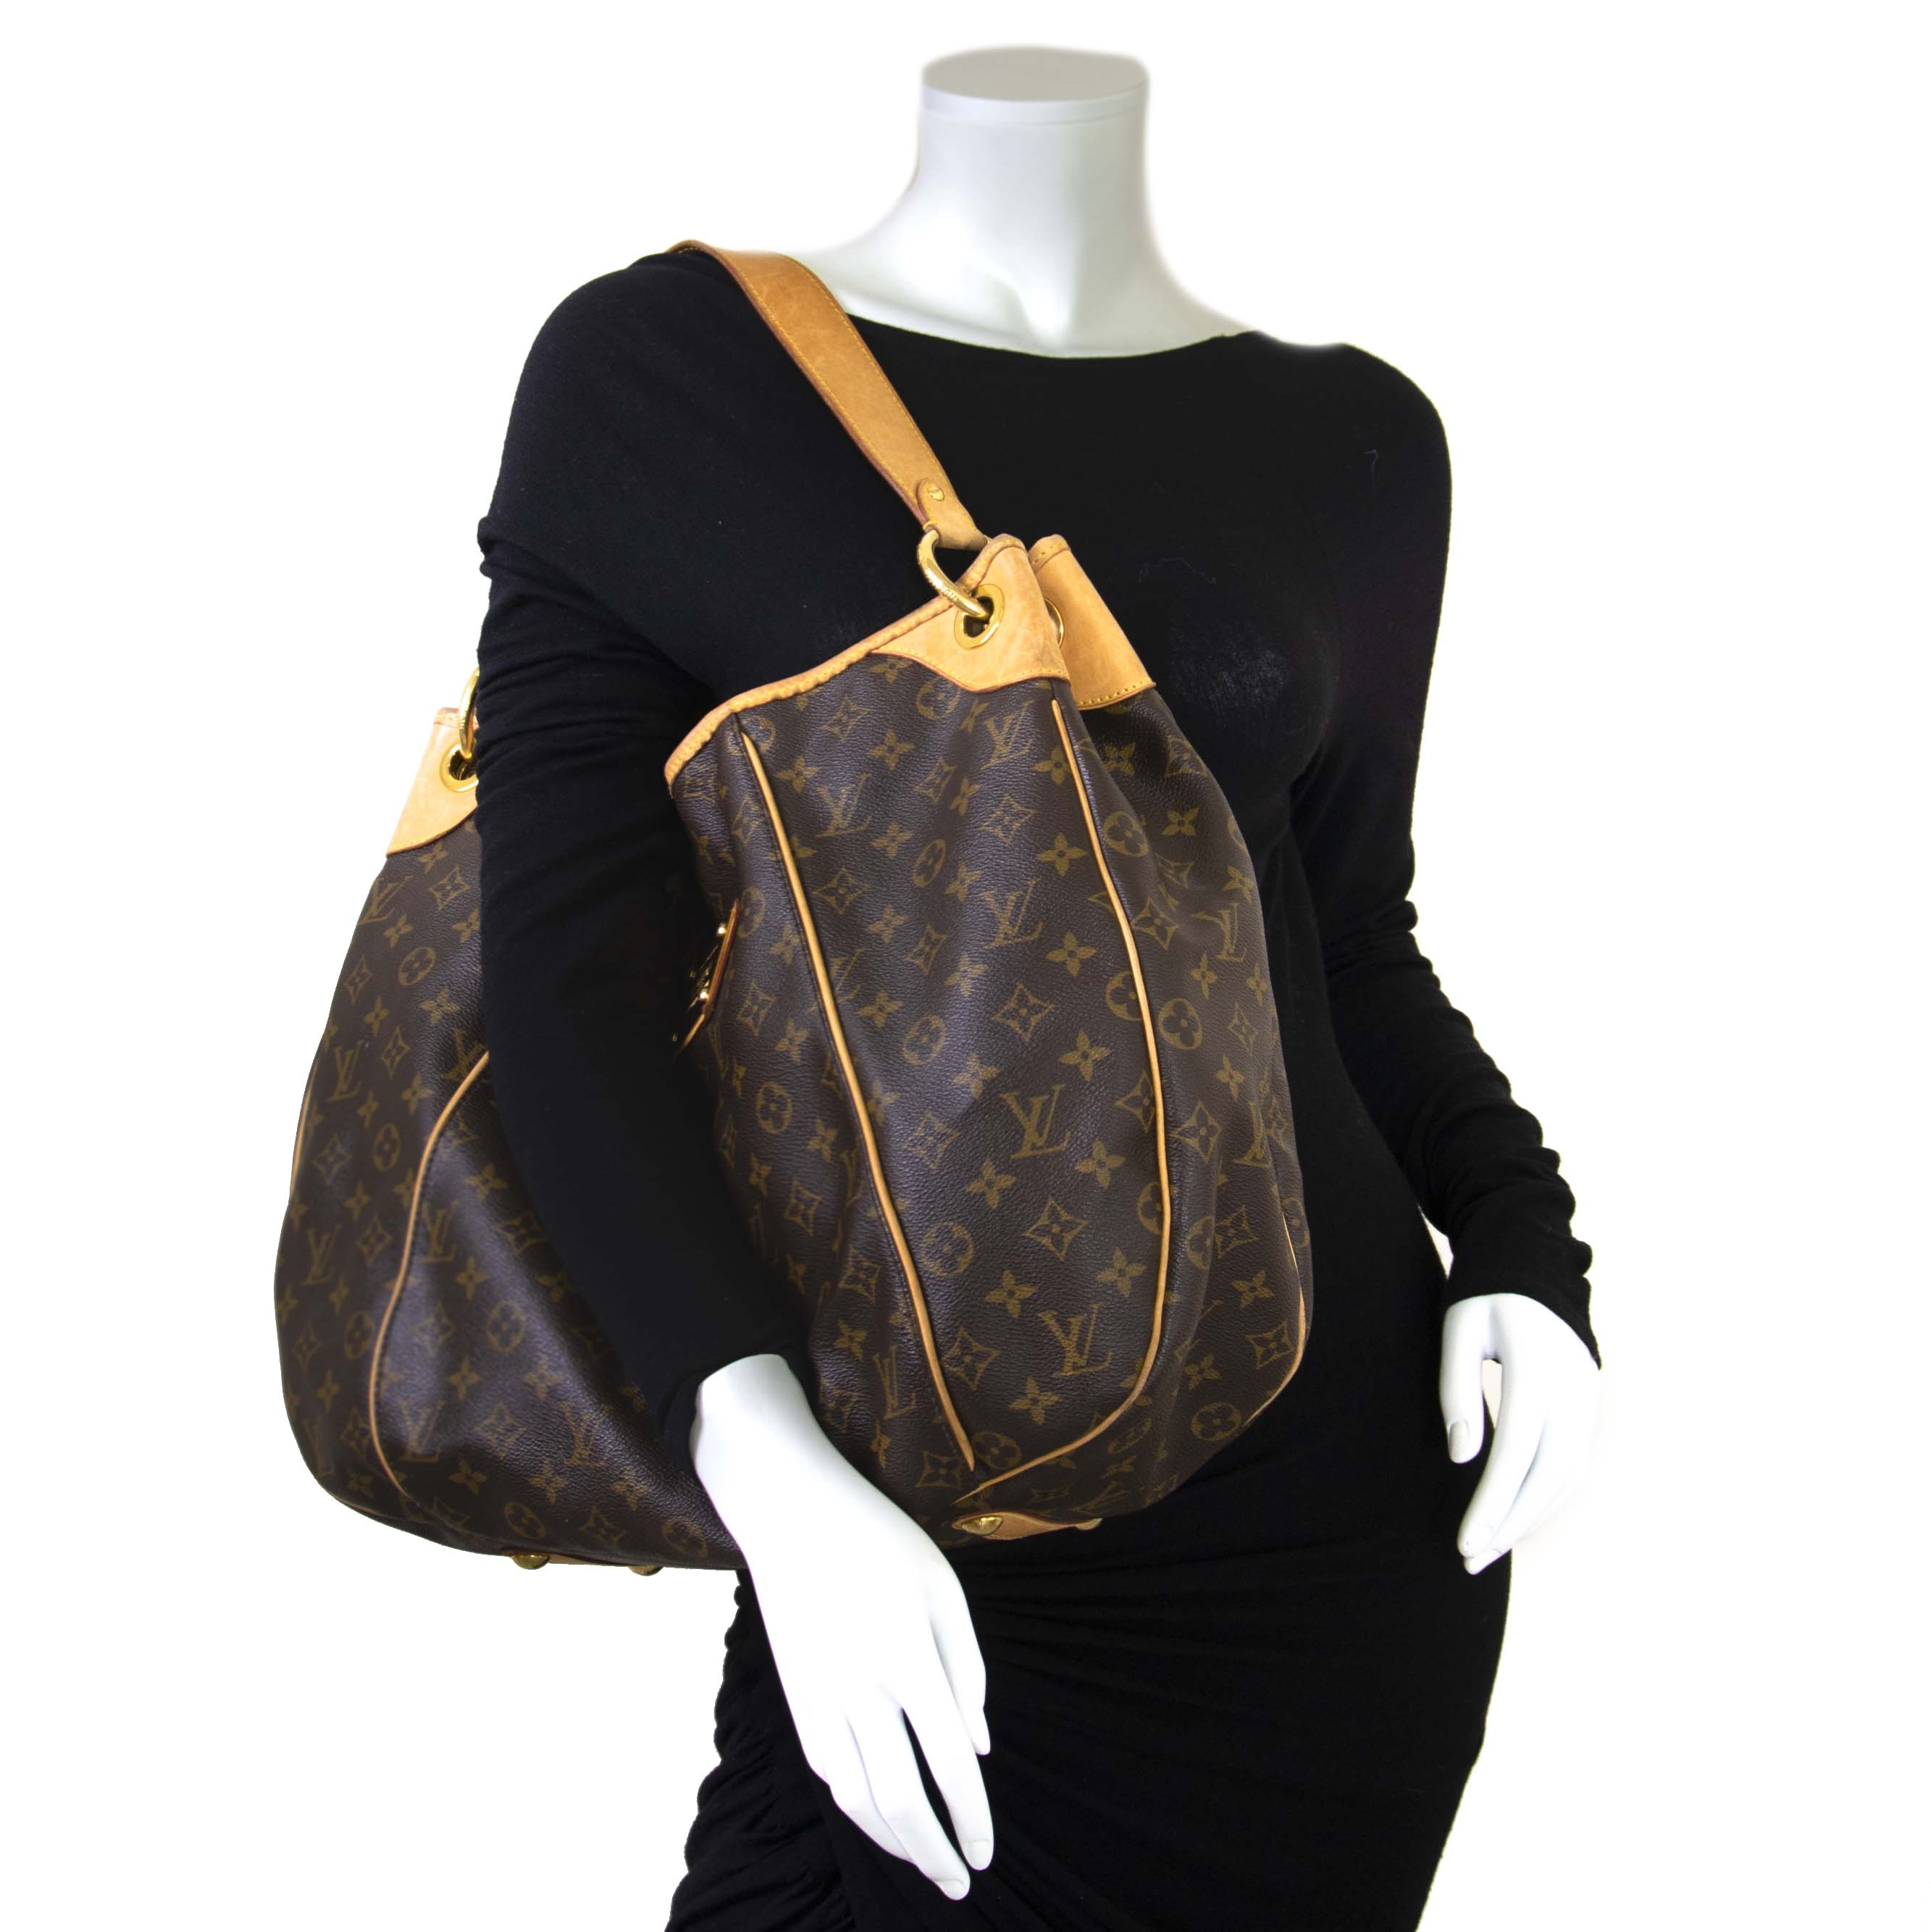 Louis Vuitton Monogram Canvas Galliera Shoulder Bag outfit online at Labellov